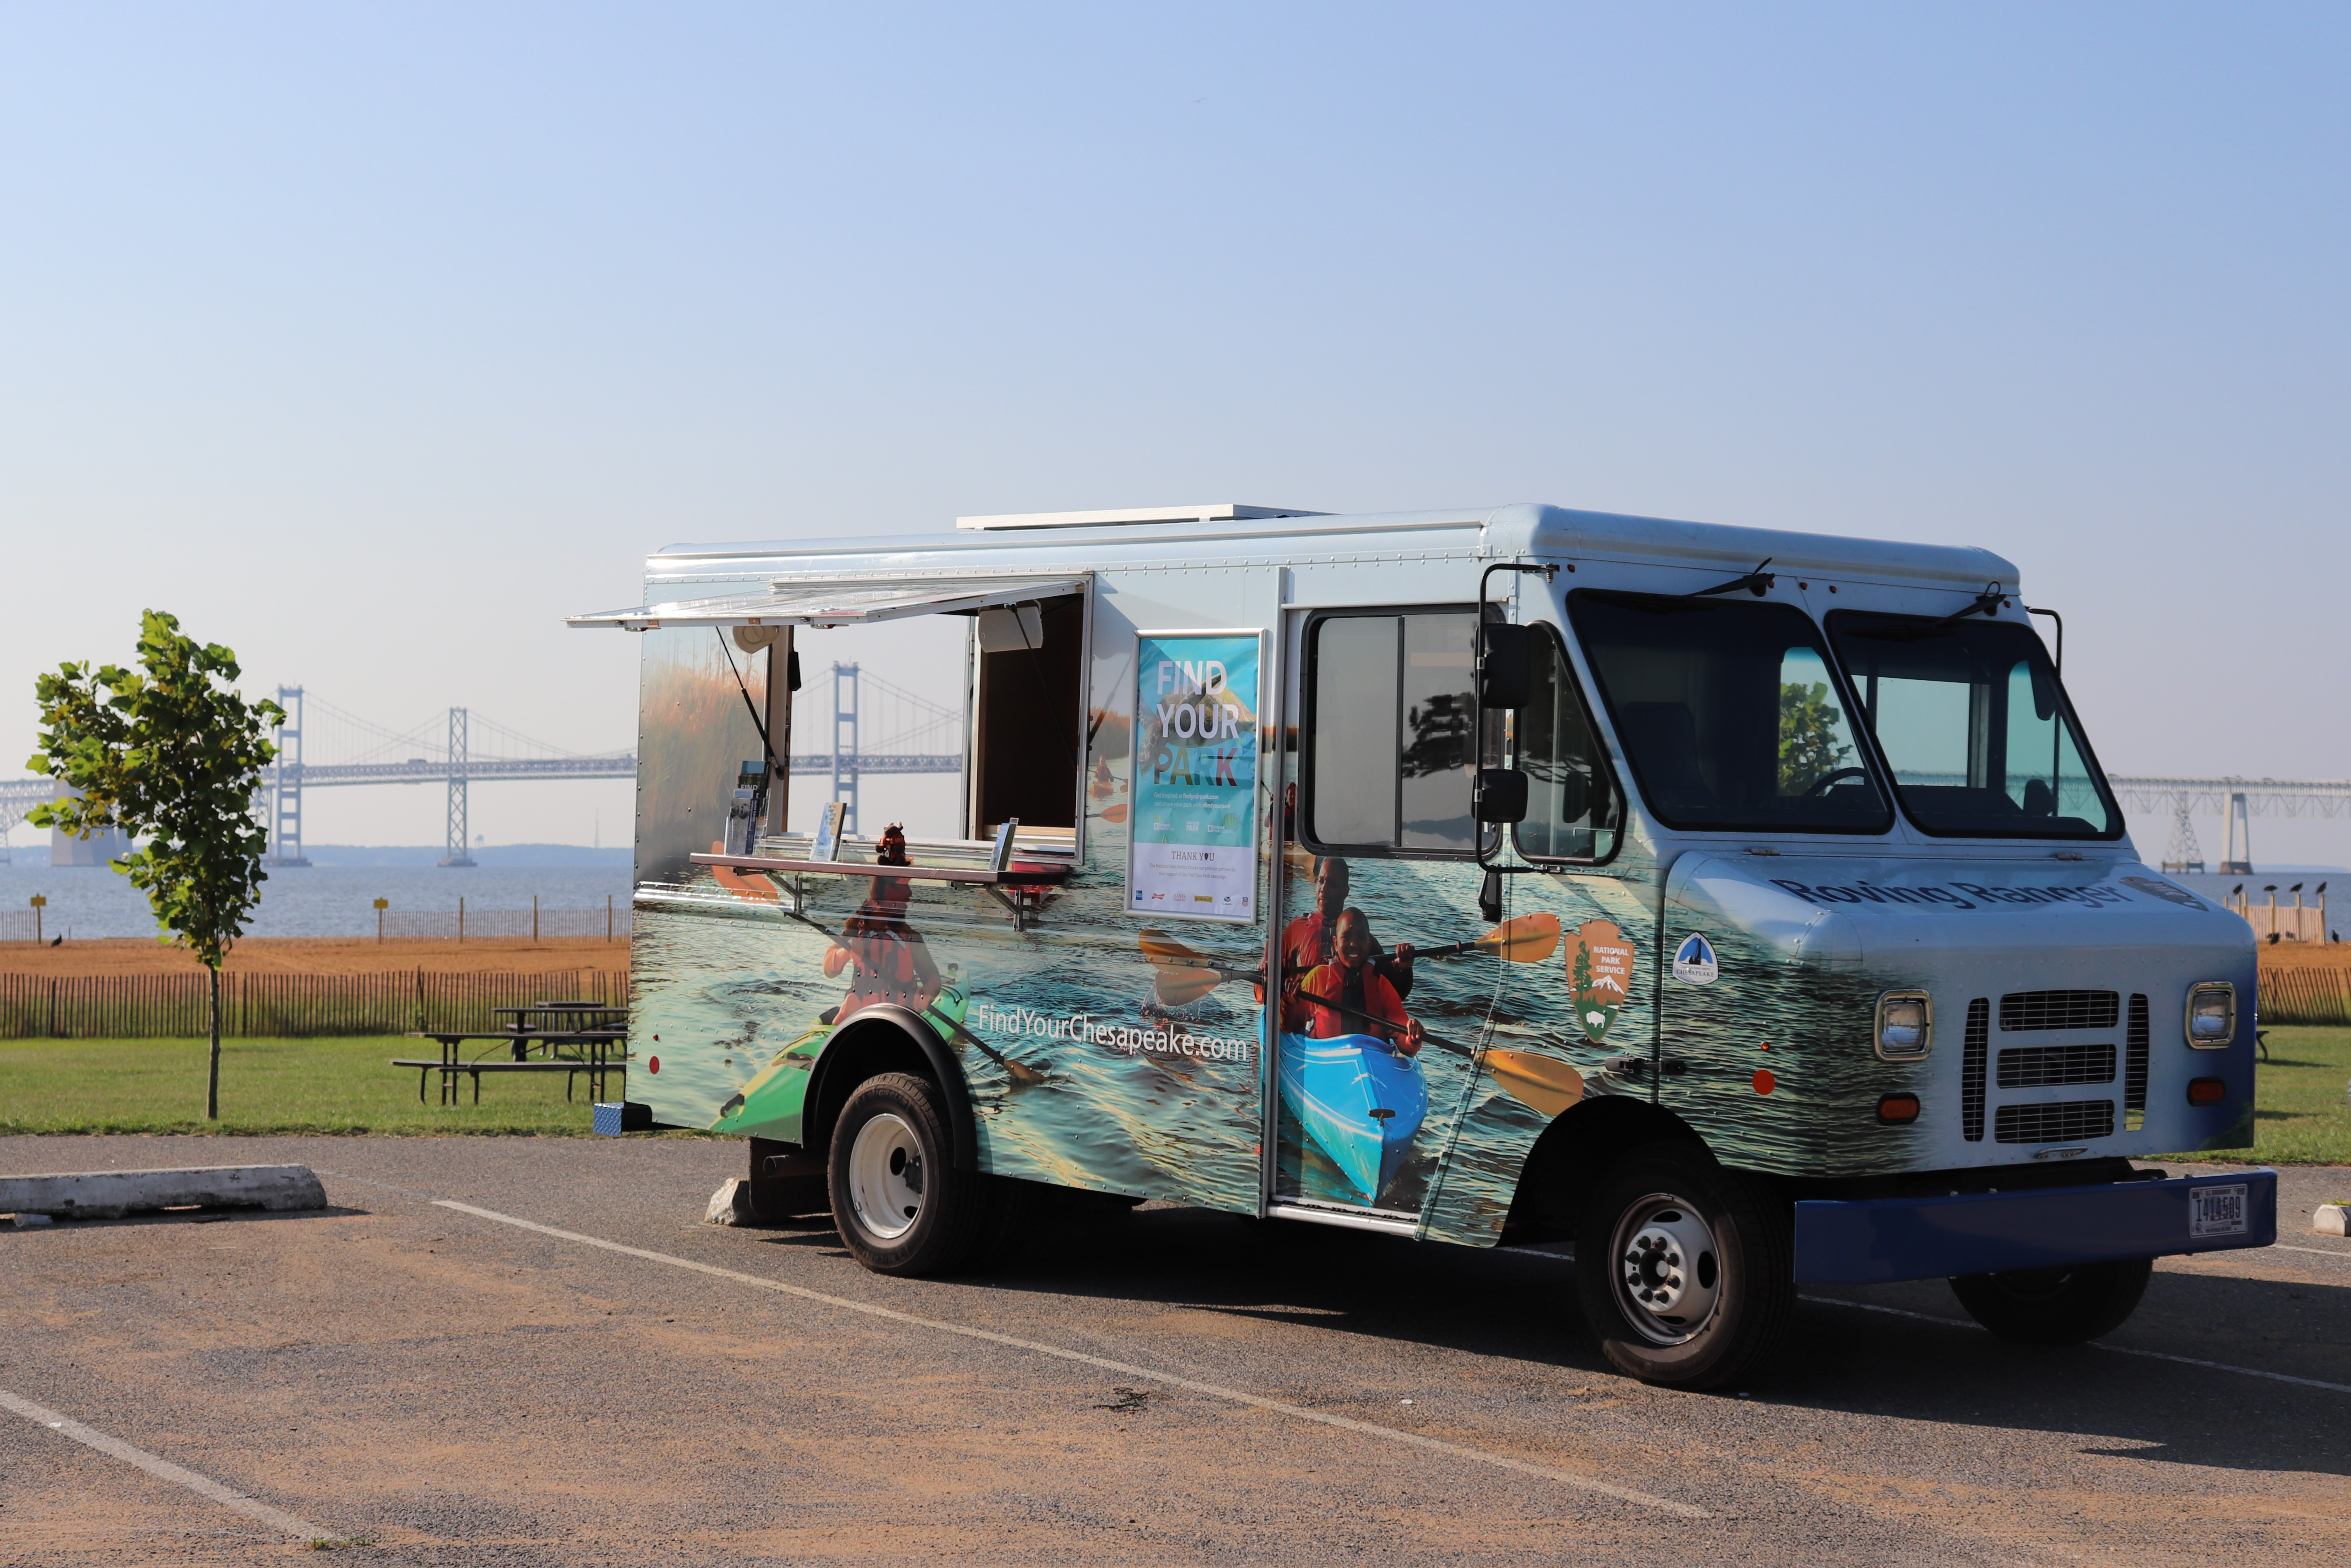 Chesapeake Roving Ranger van parked in front of a park with the waters of the Chesapeake Bay in the distant background. The van features a colorful vinyl wrap depicting kayakers on the water trail.